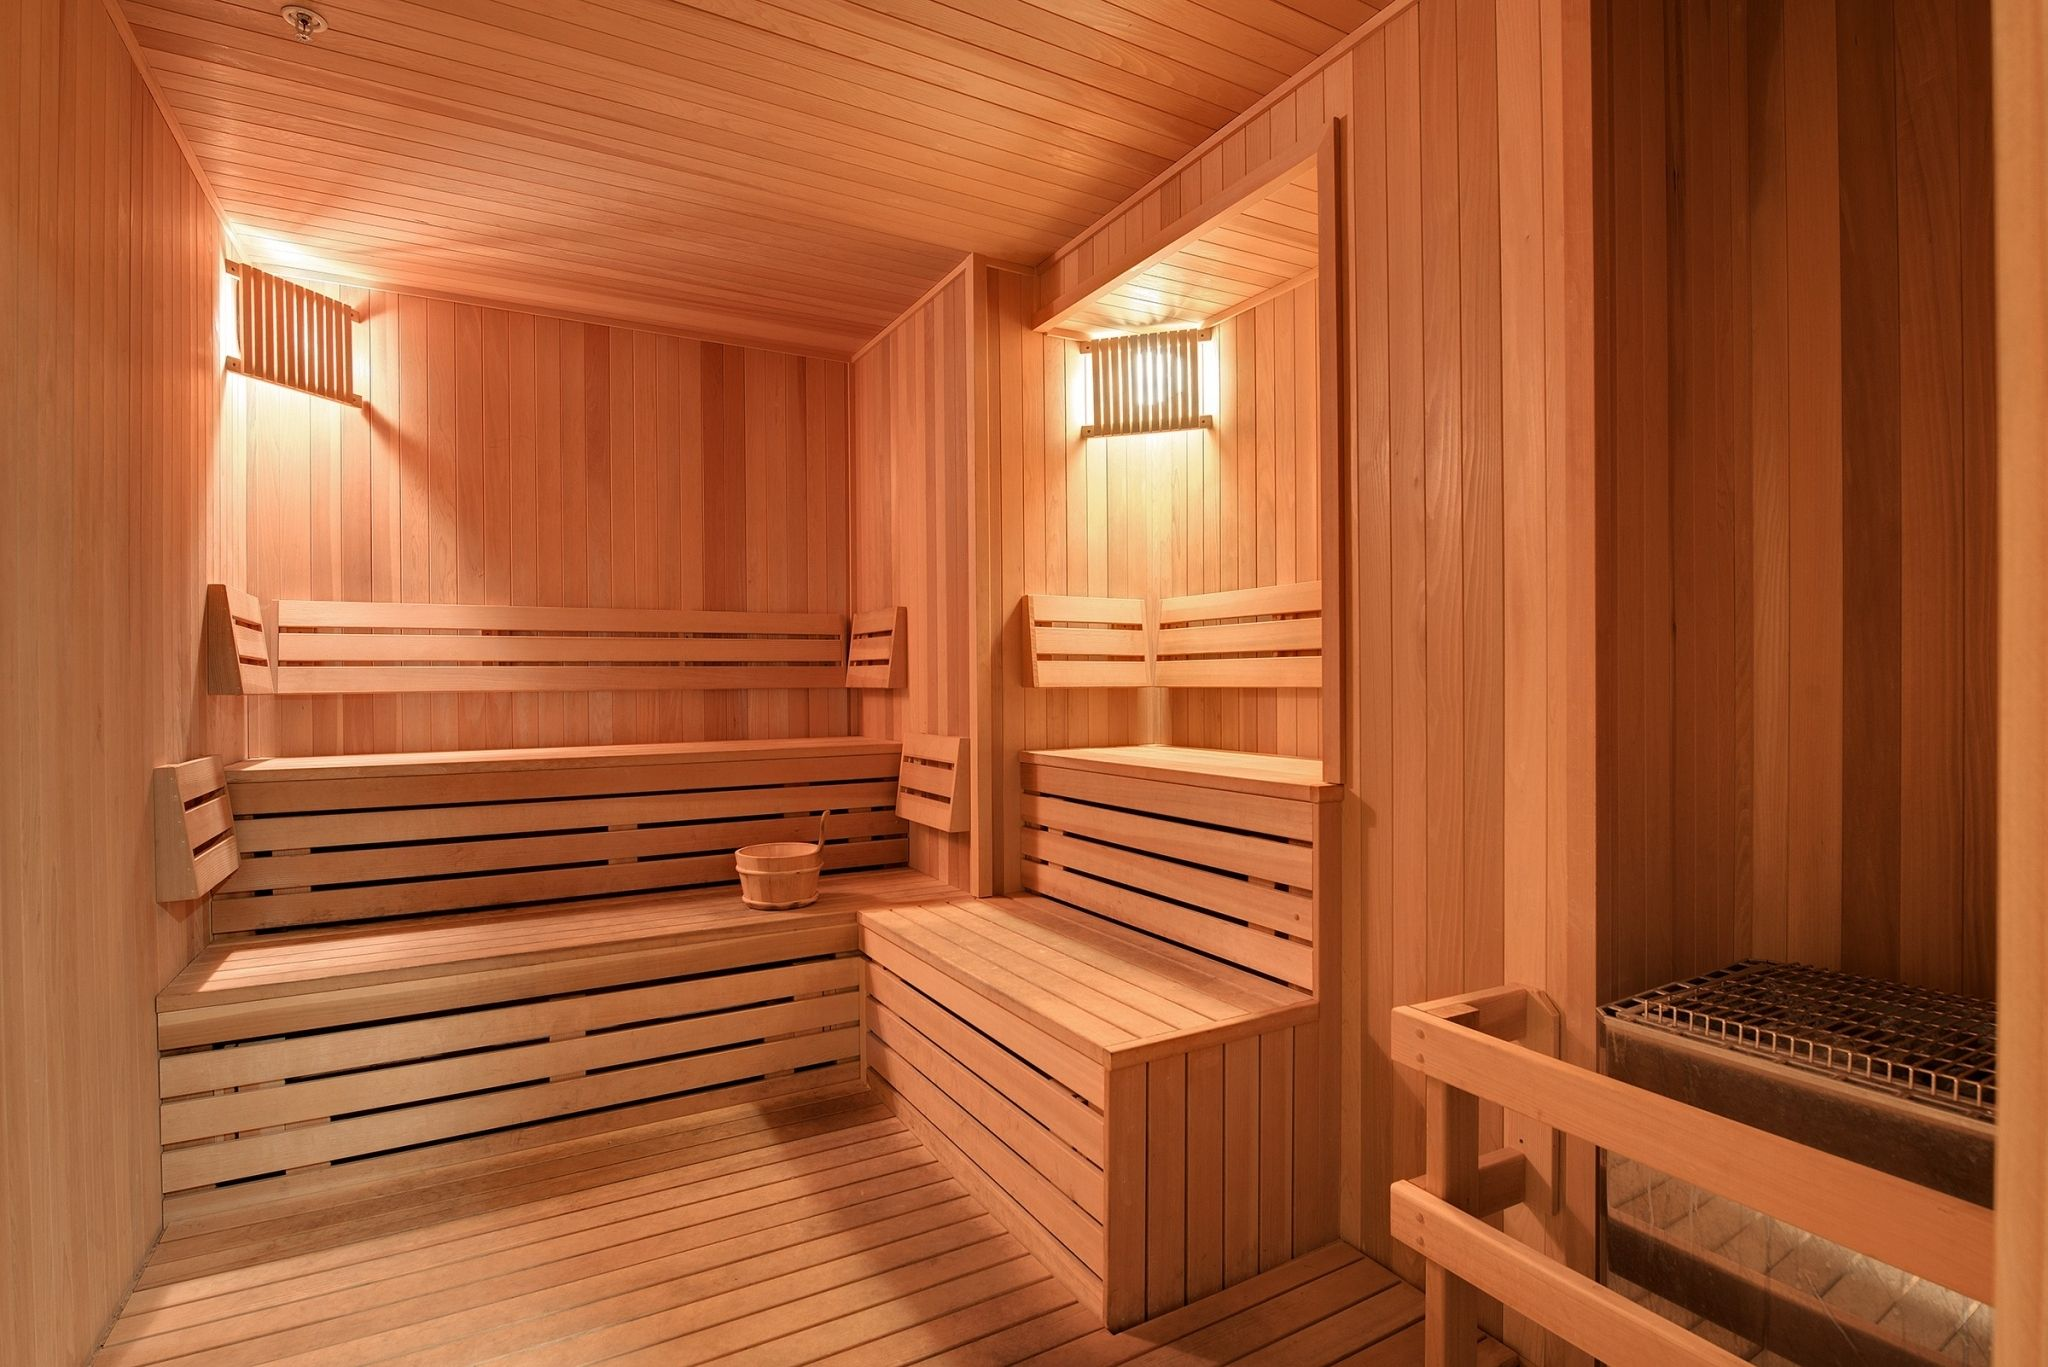 Sauna at Eitel Building City Apartments in downtown ...